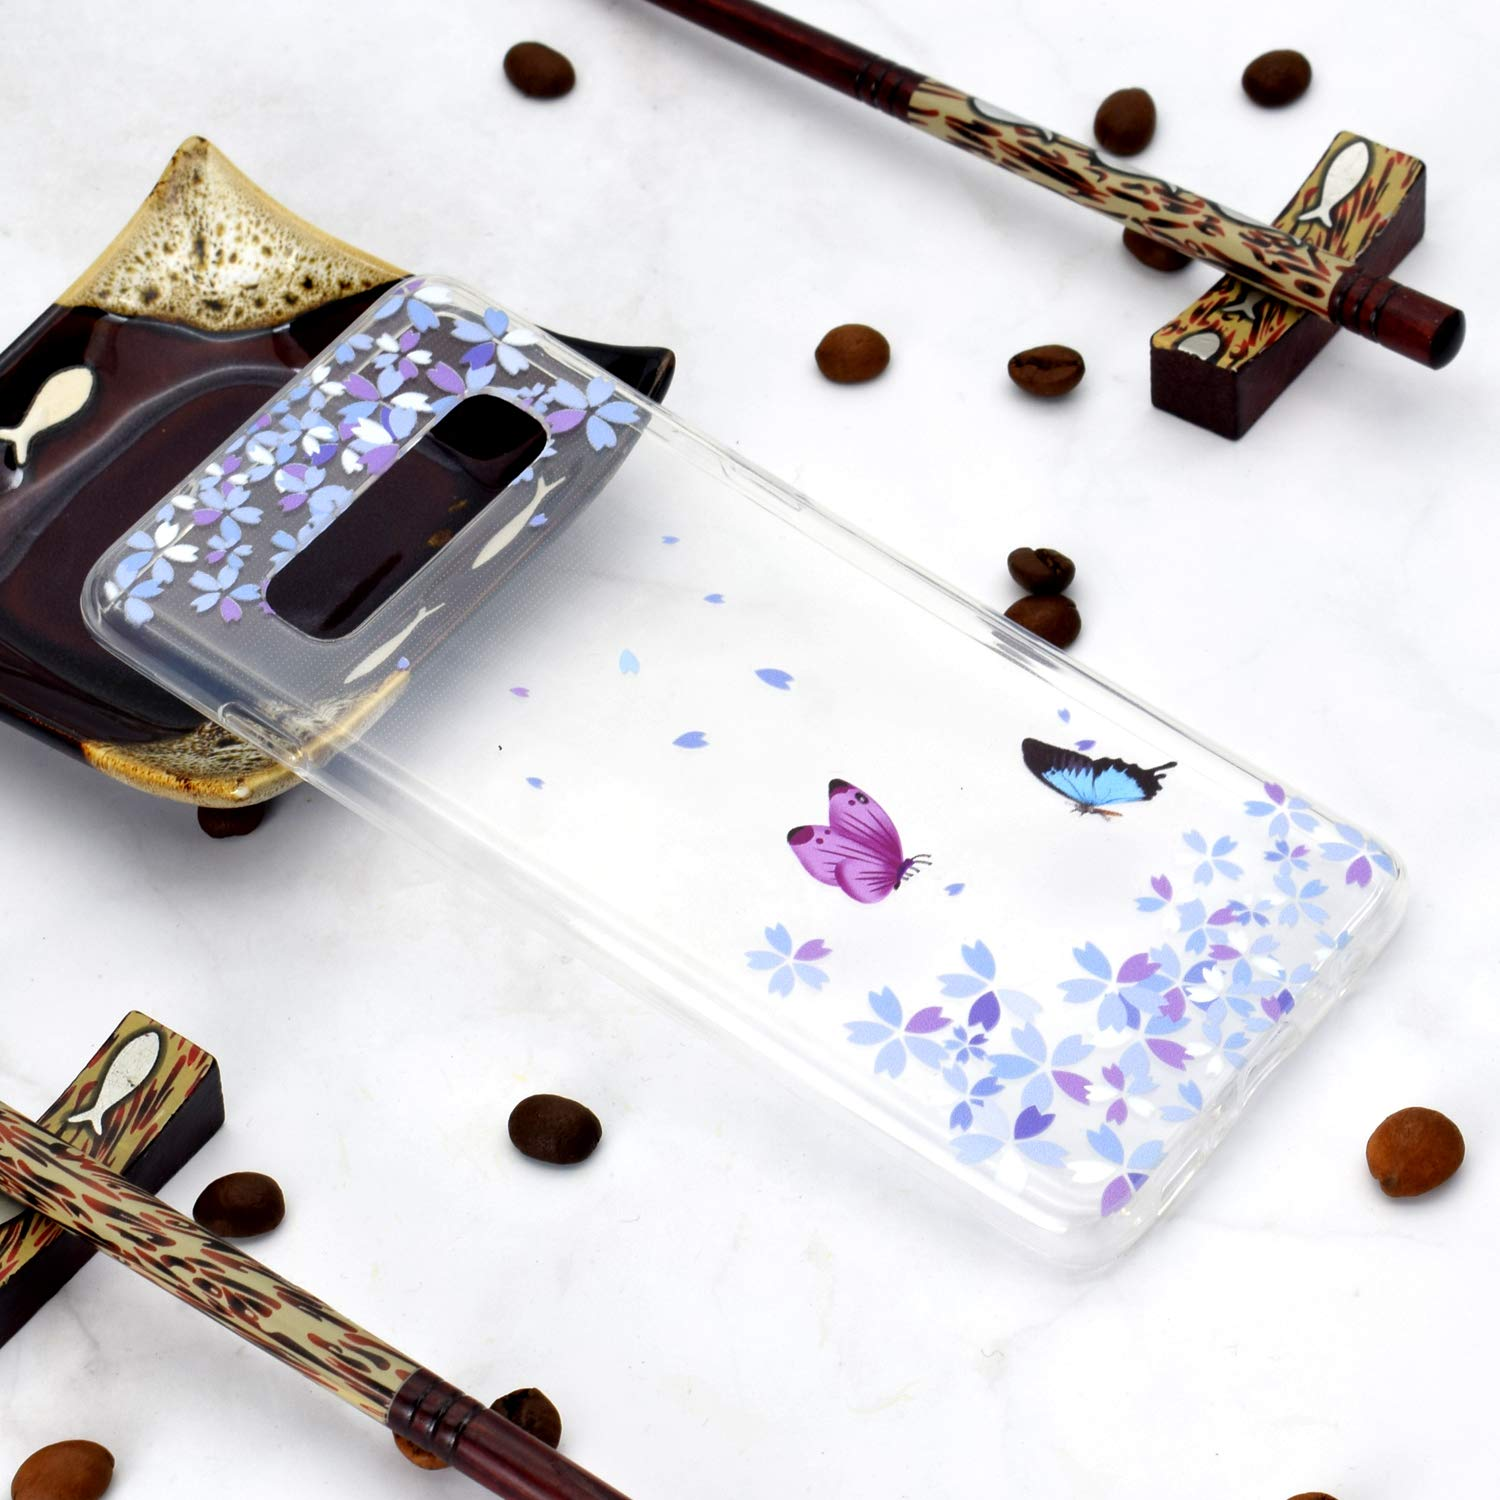 Blue Dreamcatcher Feather Mandala HopMore 3 x Case Cover for Samsung Galaxy S10 Silicone Clear with Pretty Design Shockproof Case Protective Cover Transparent Thin Gel Slim Bumper for Girls Woman